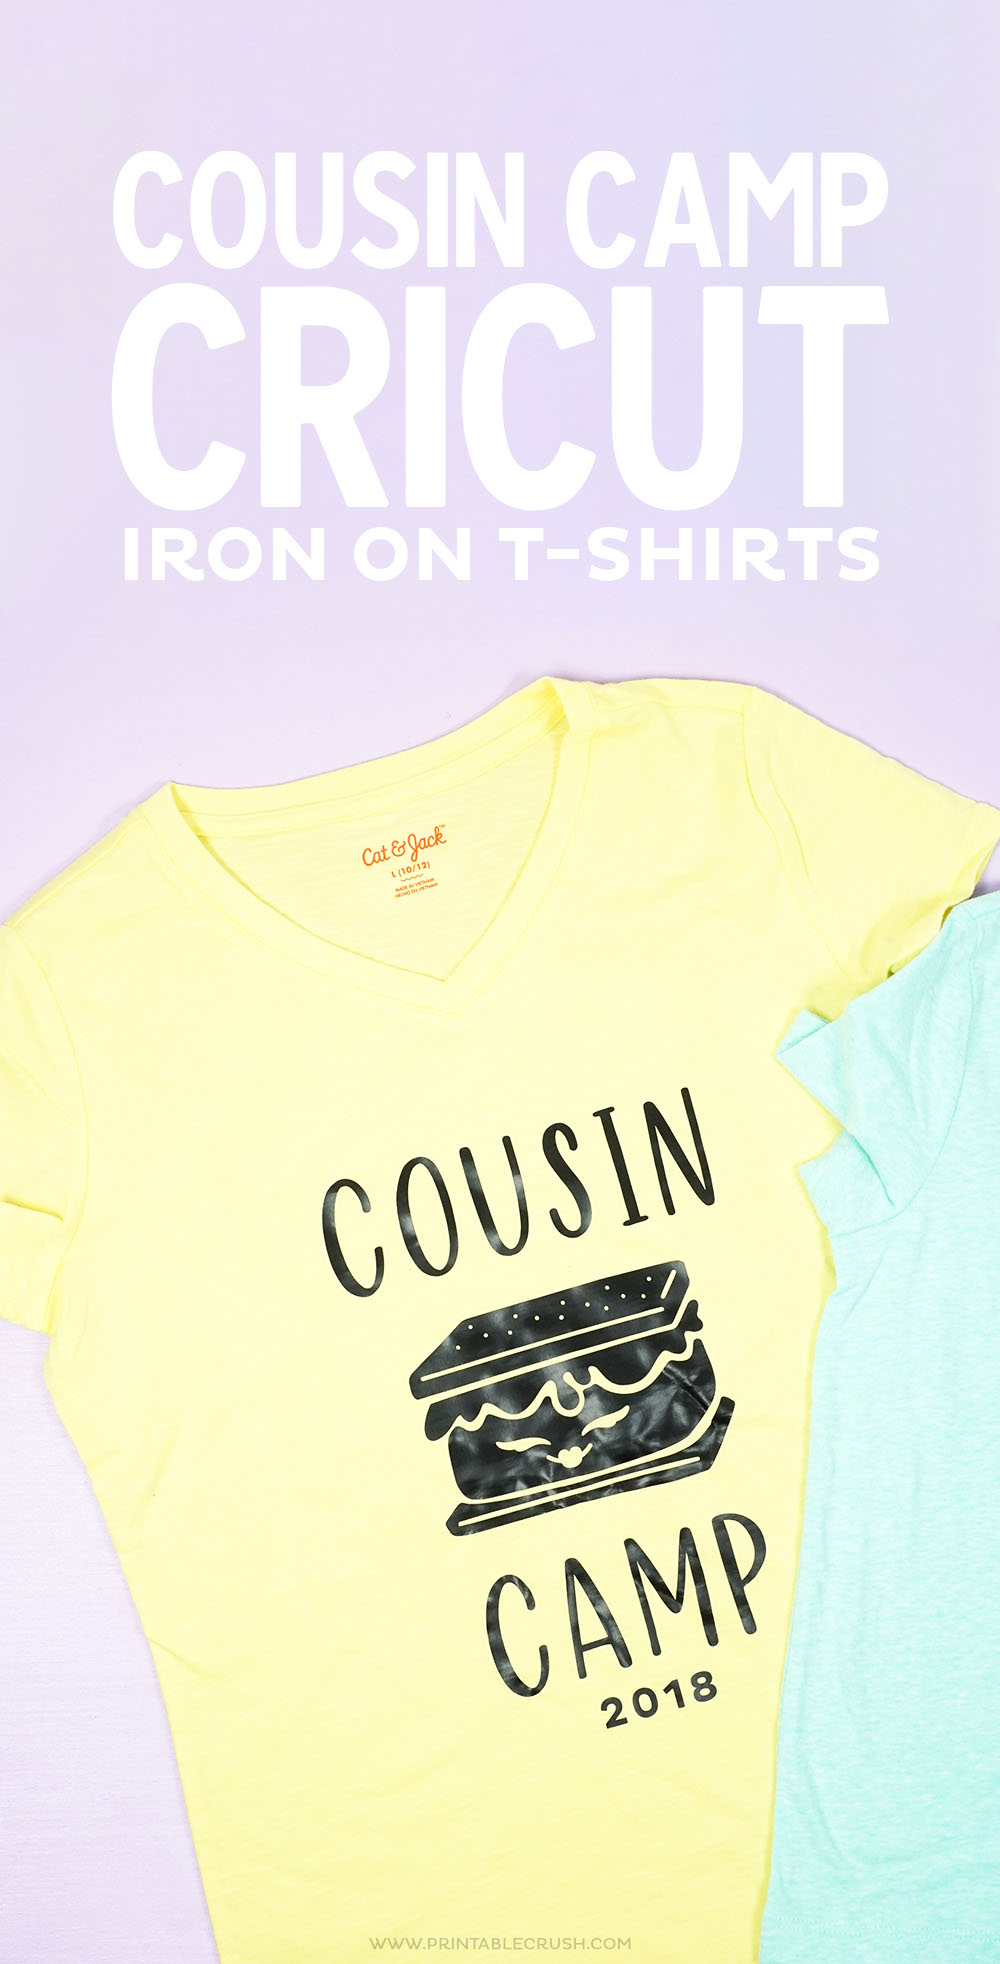 These Cousin Camp Iron-on T-shirts are perfect for family reunions and other family get togethers!